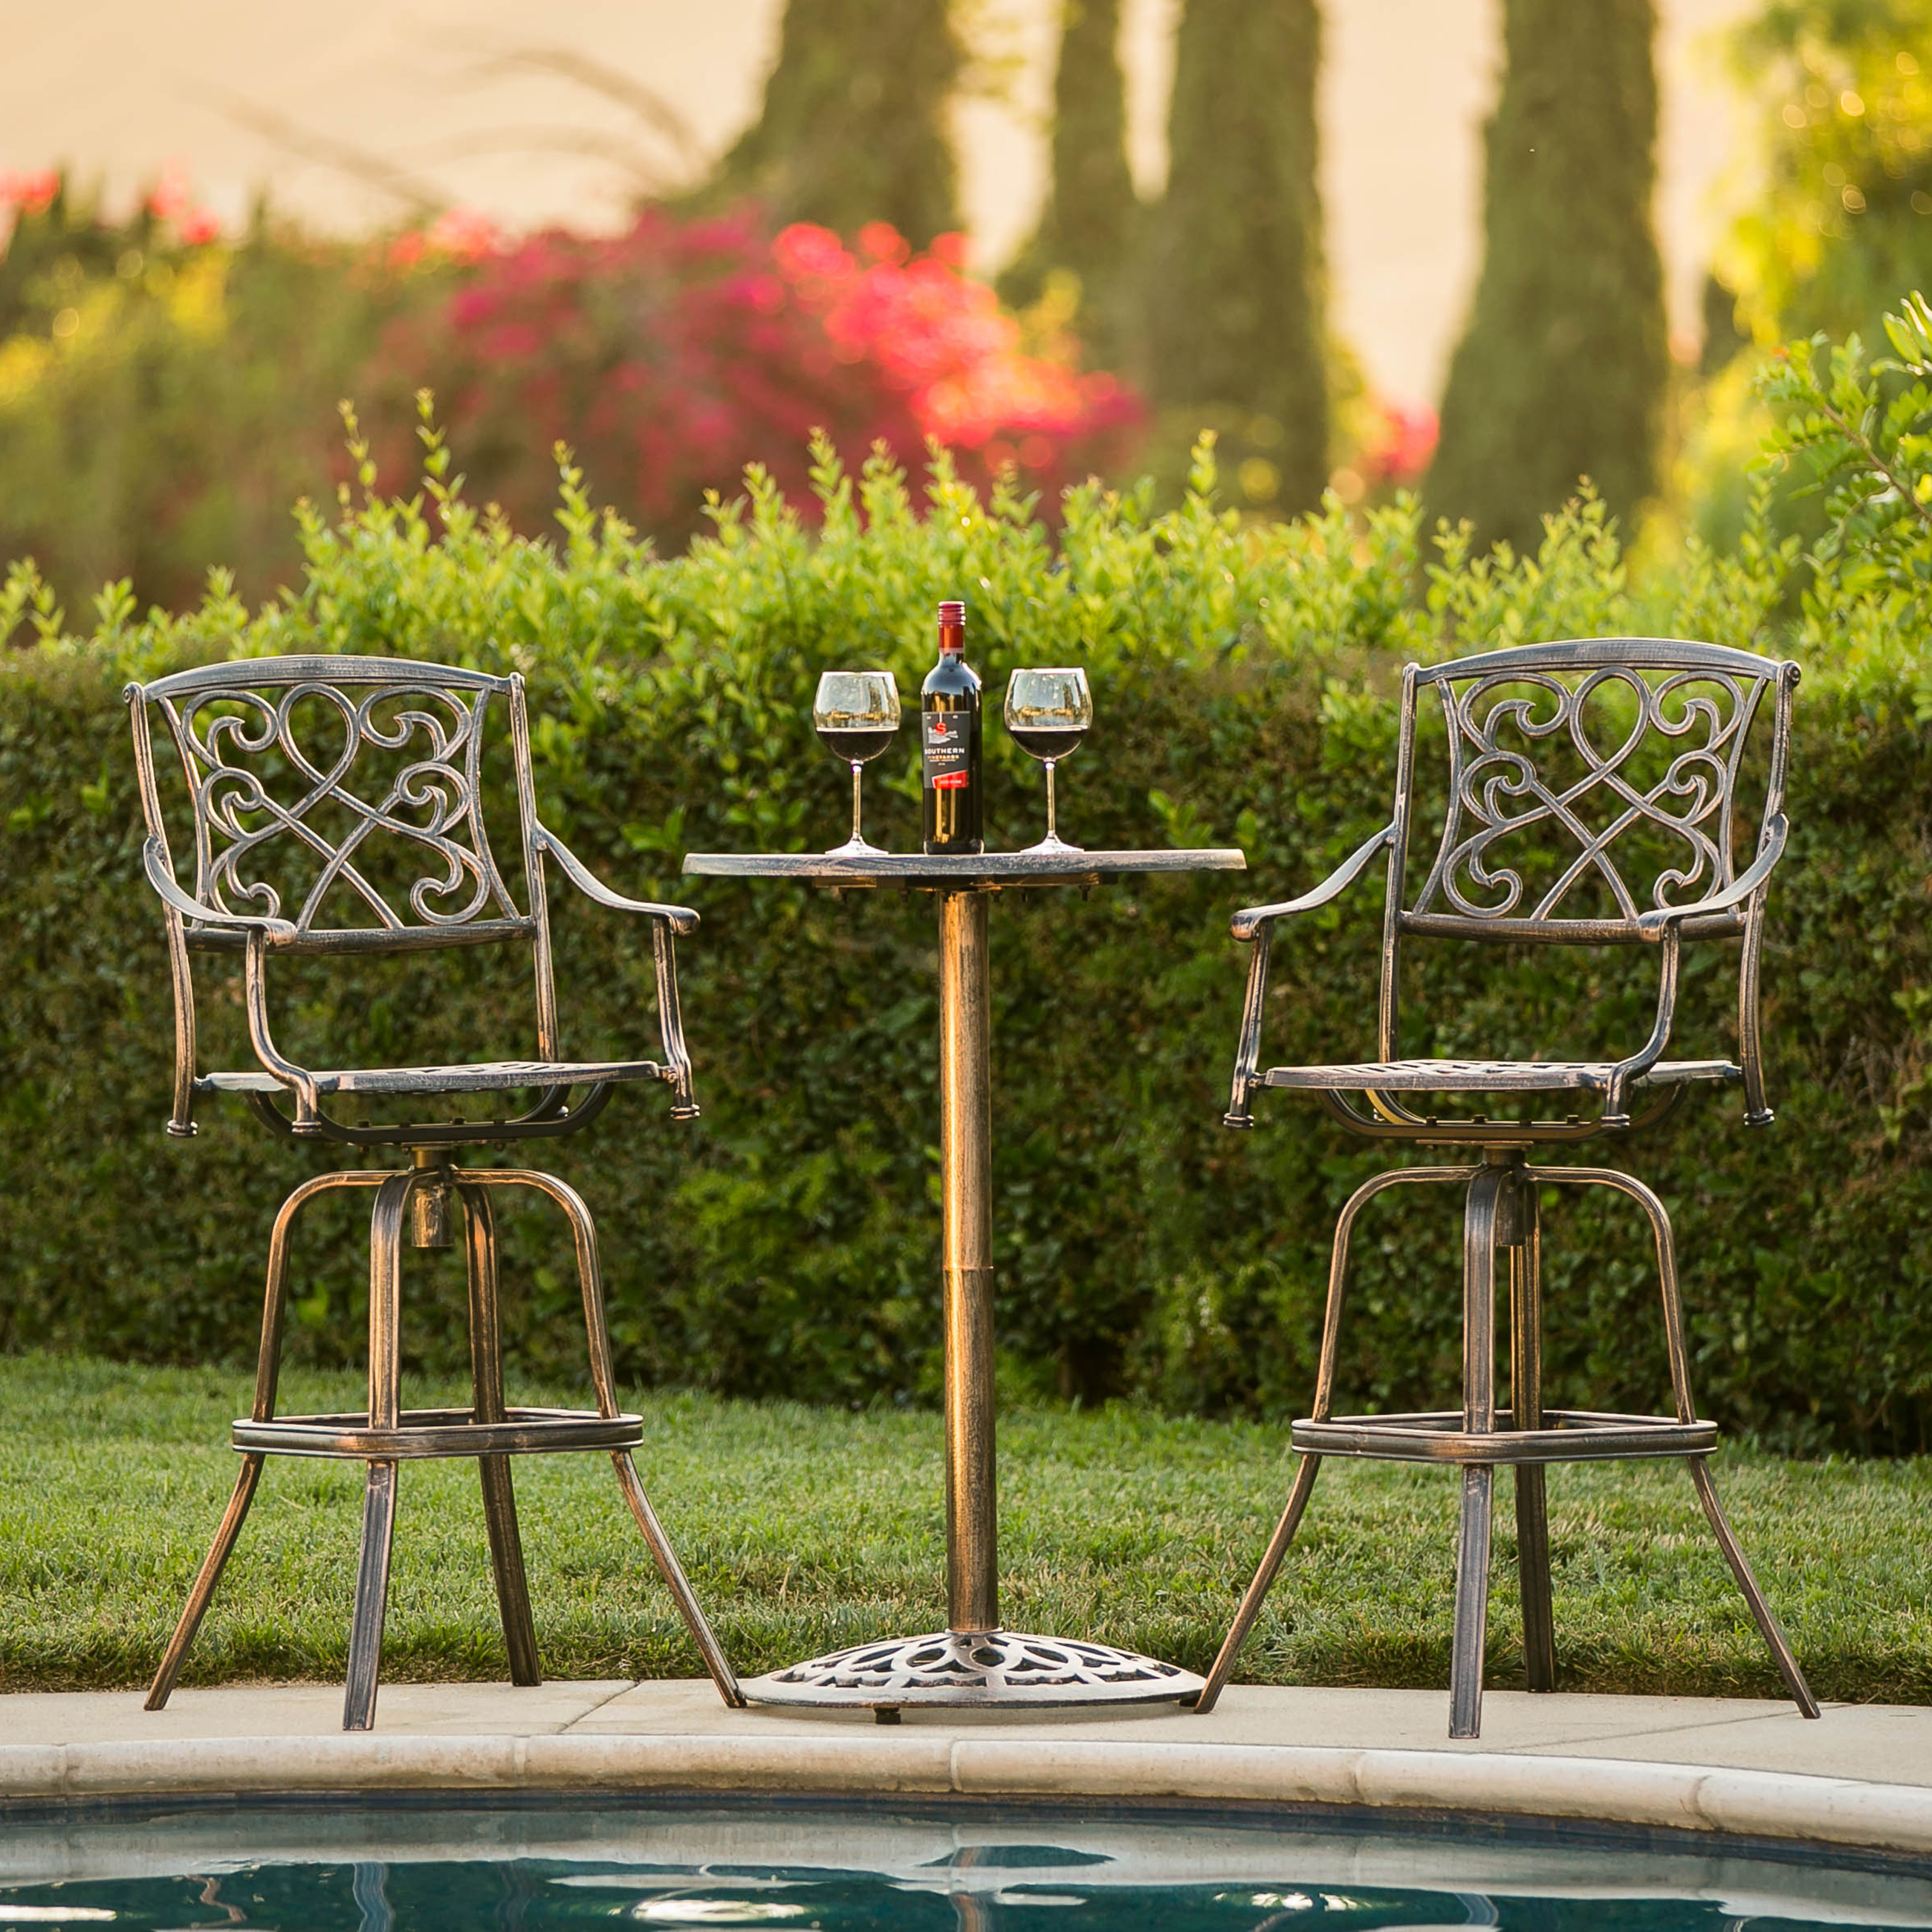 Best Choice Products Outdoor Patio 3-Piece Cast Aluminum Bistro Set, Table and Chairs by Best Choice Products